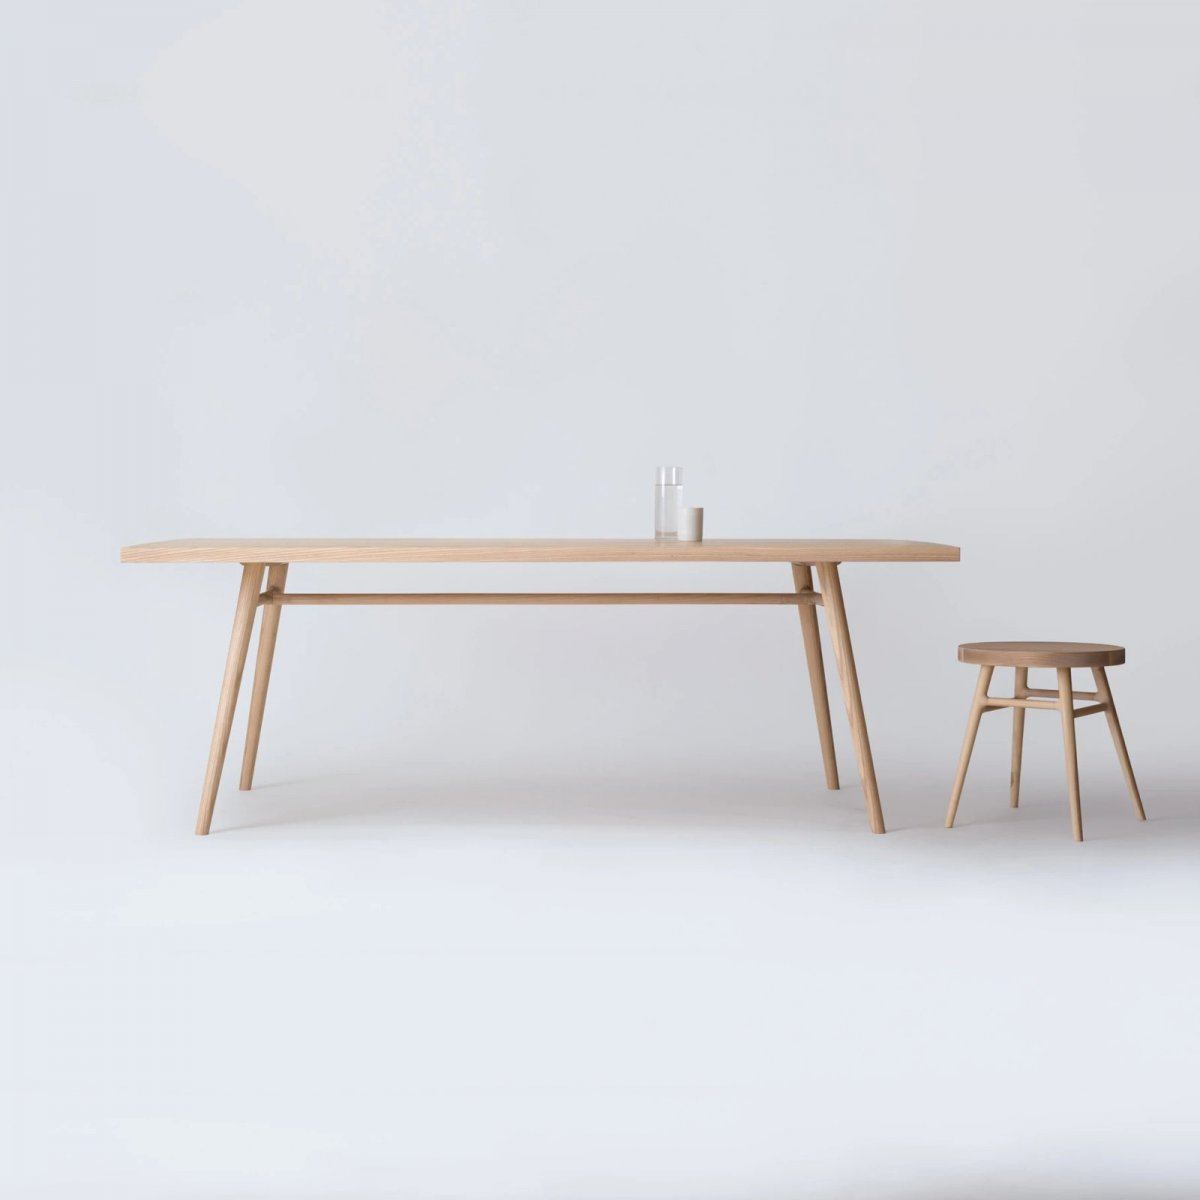 Bough Table and Stool.